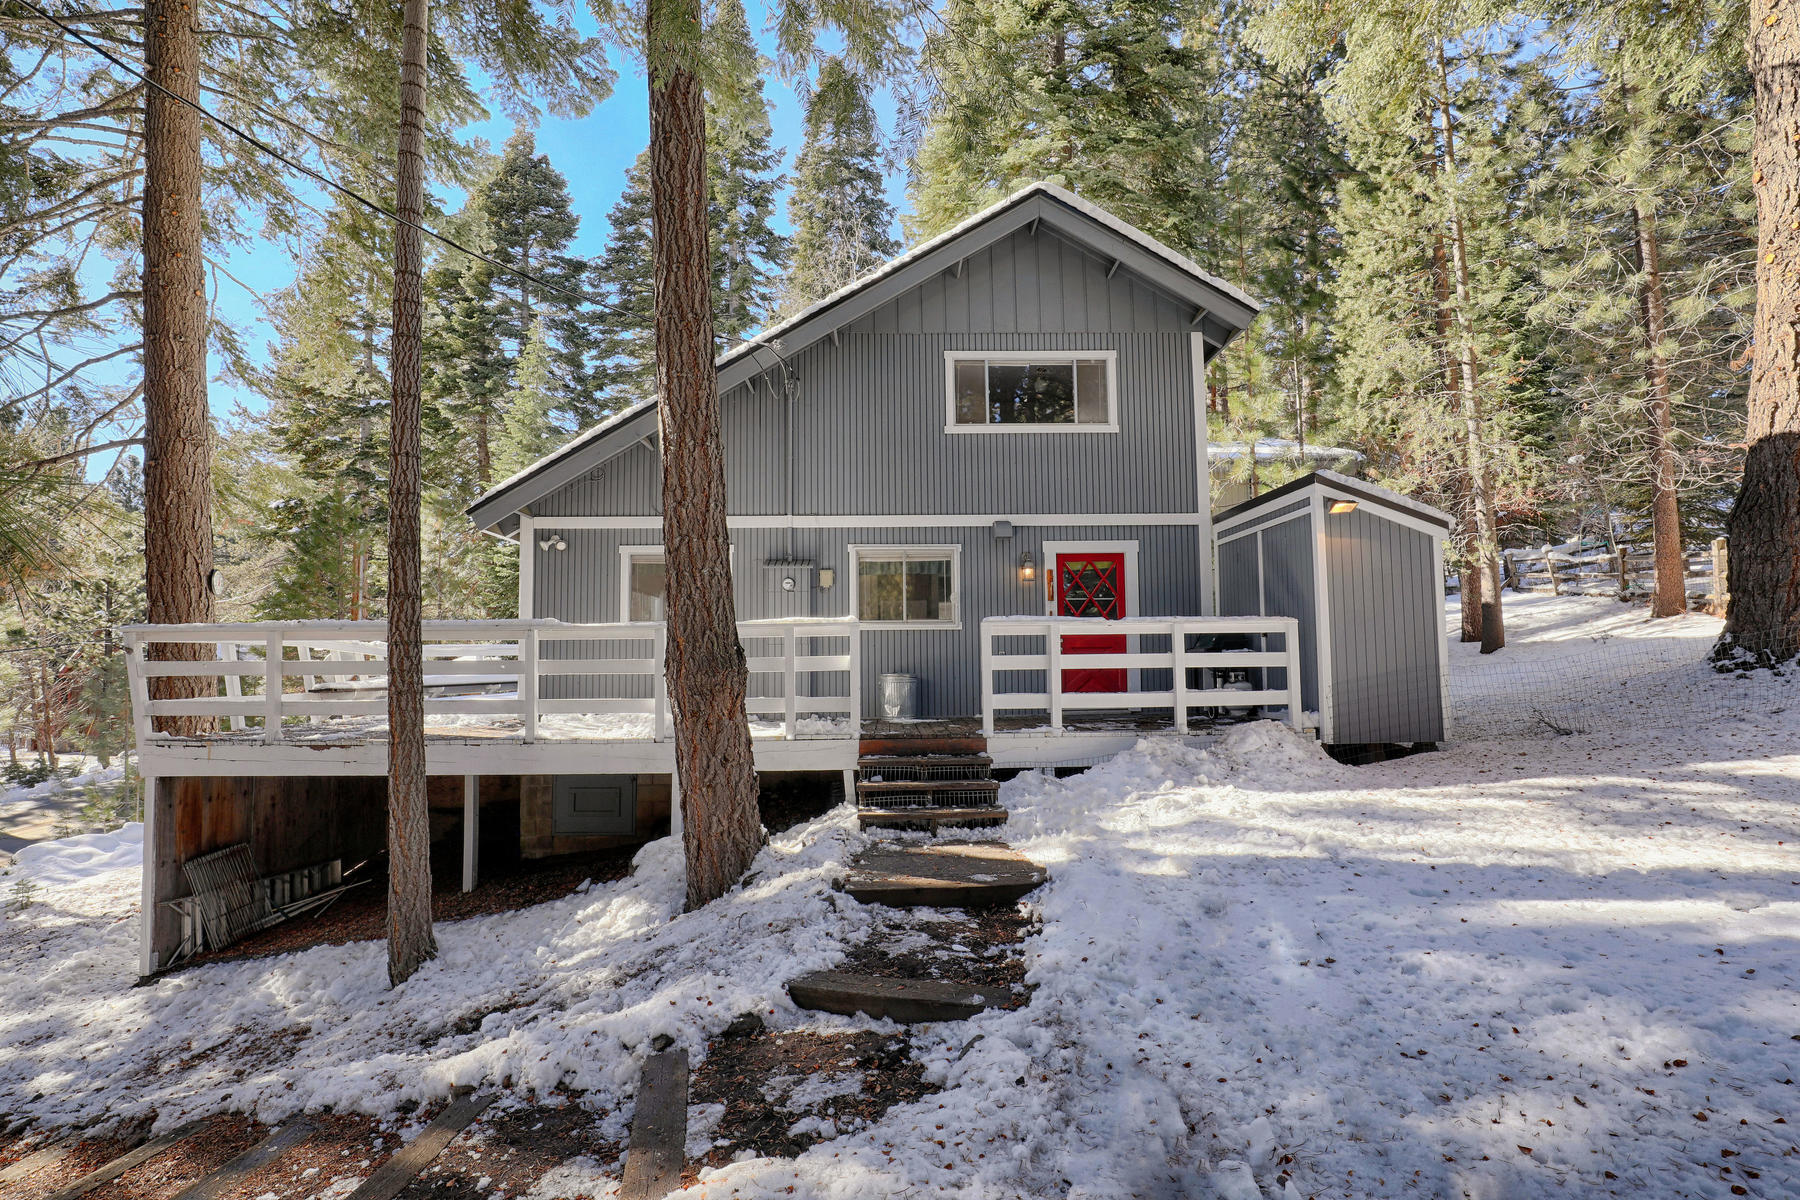 Single Family Home for Active at 11312 Silver Fir Drive, Truckee, CA 11312 Silver Fir Drive Truckee, California 96161 United States